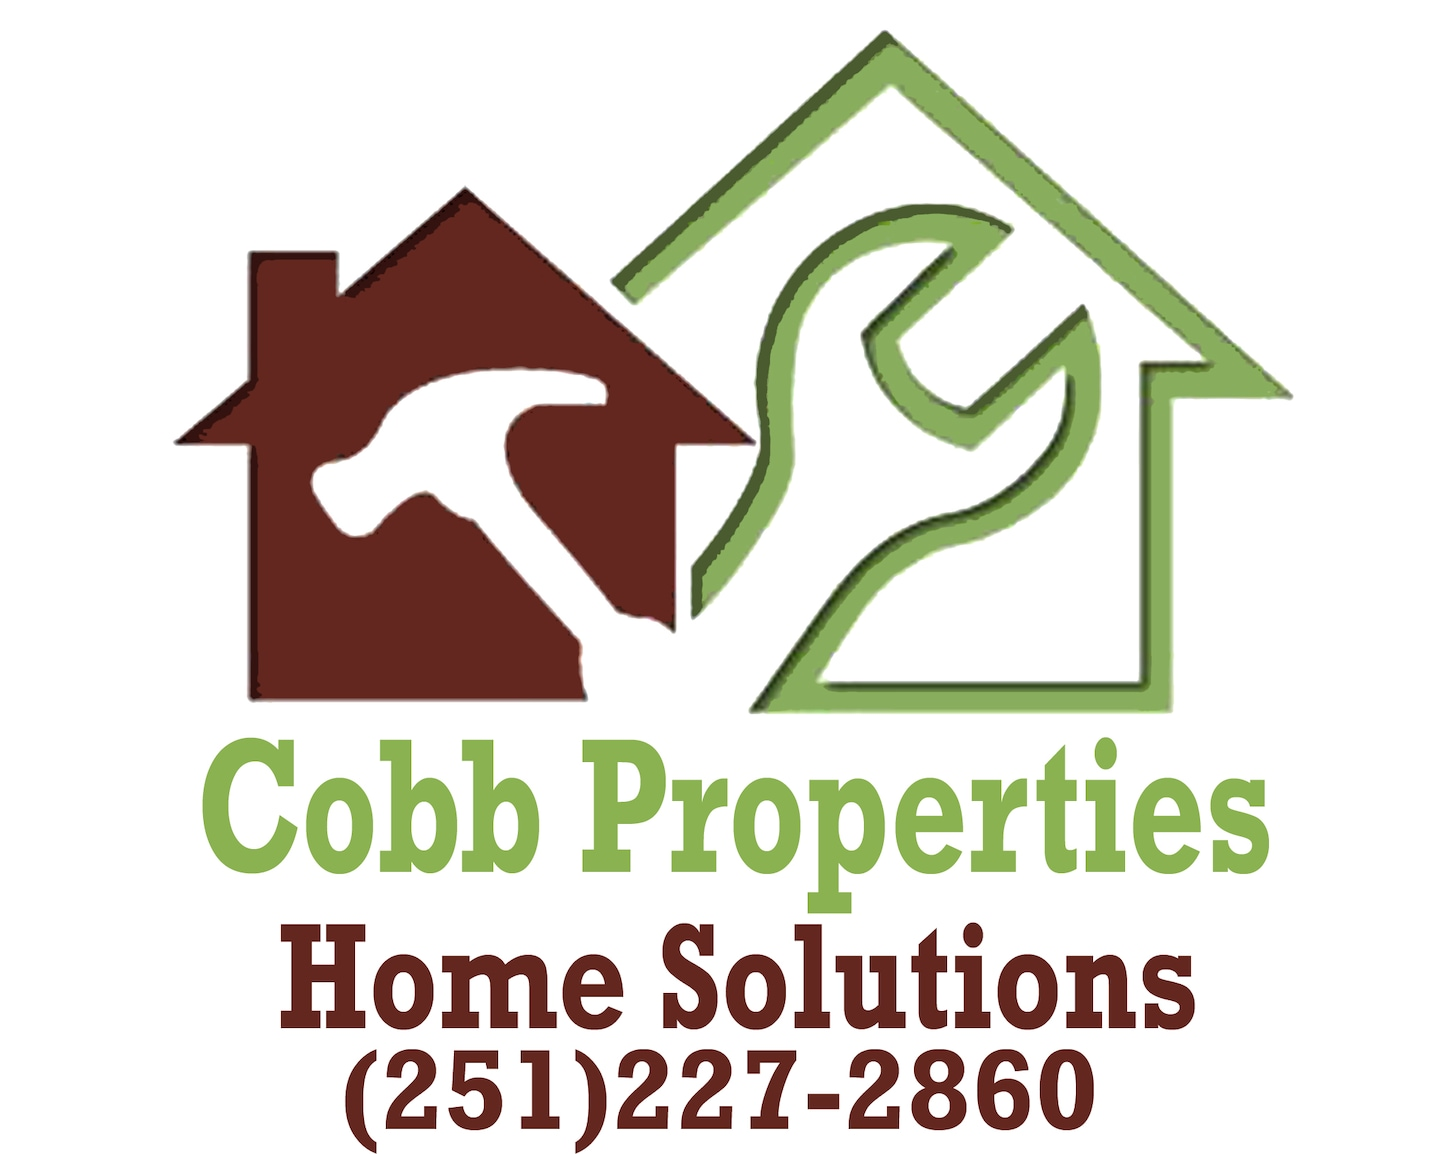 Cobb Properties - Home Solutions